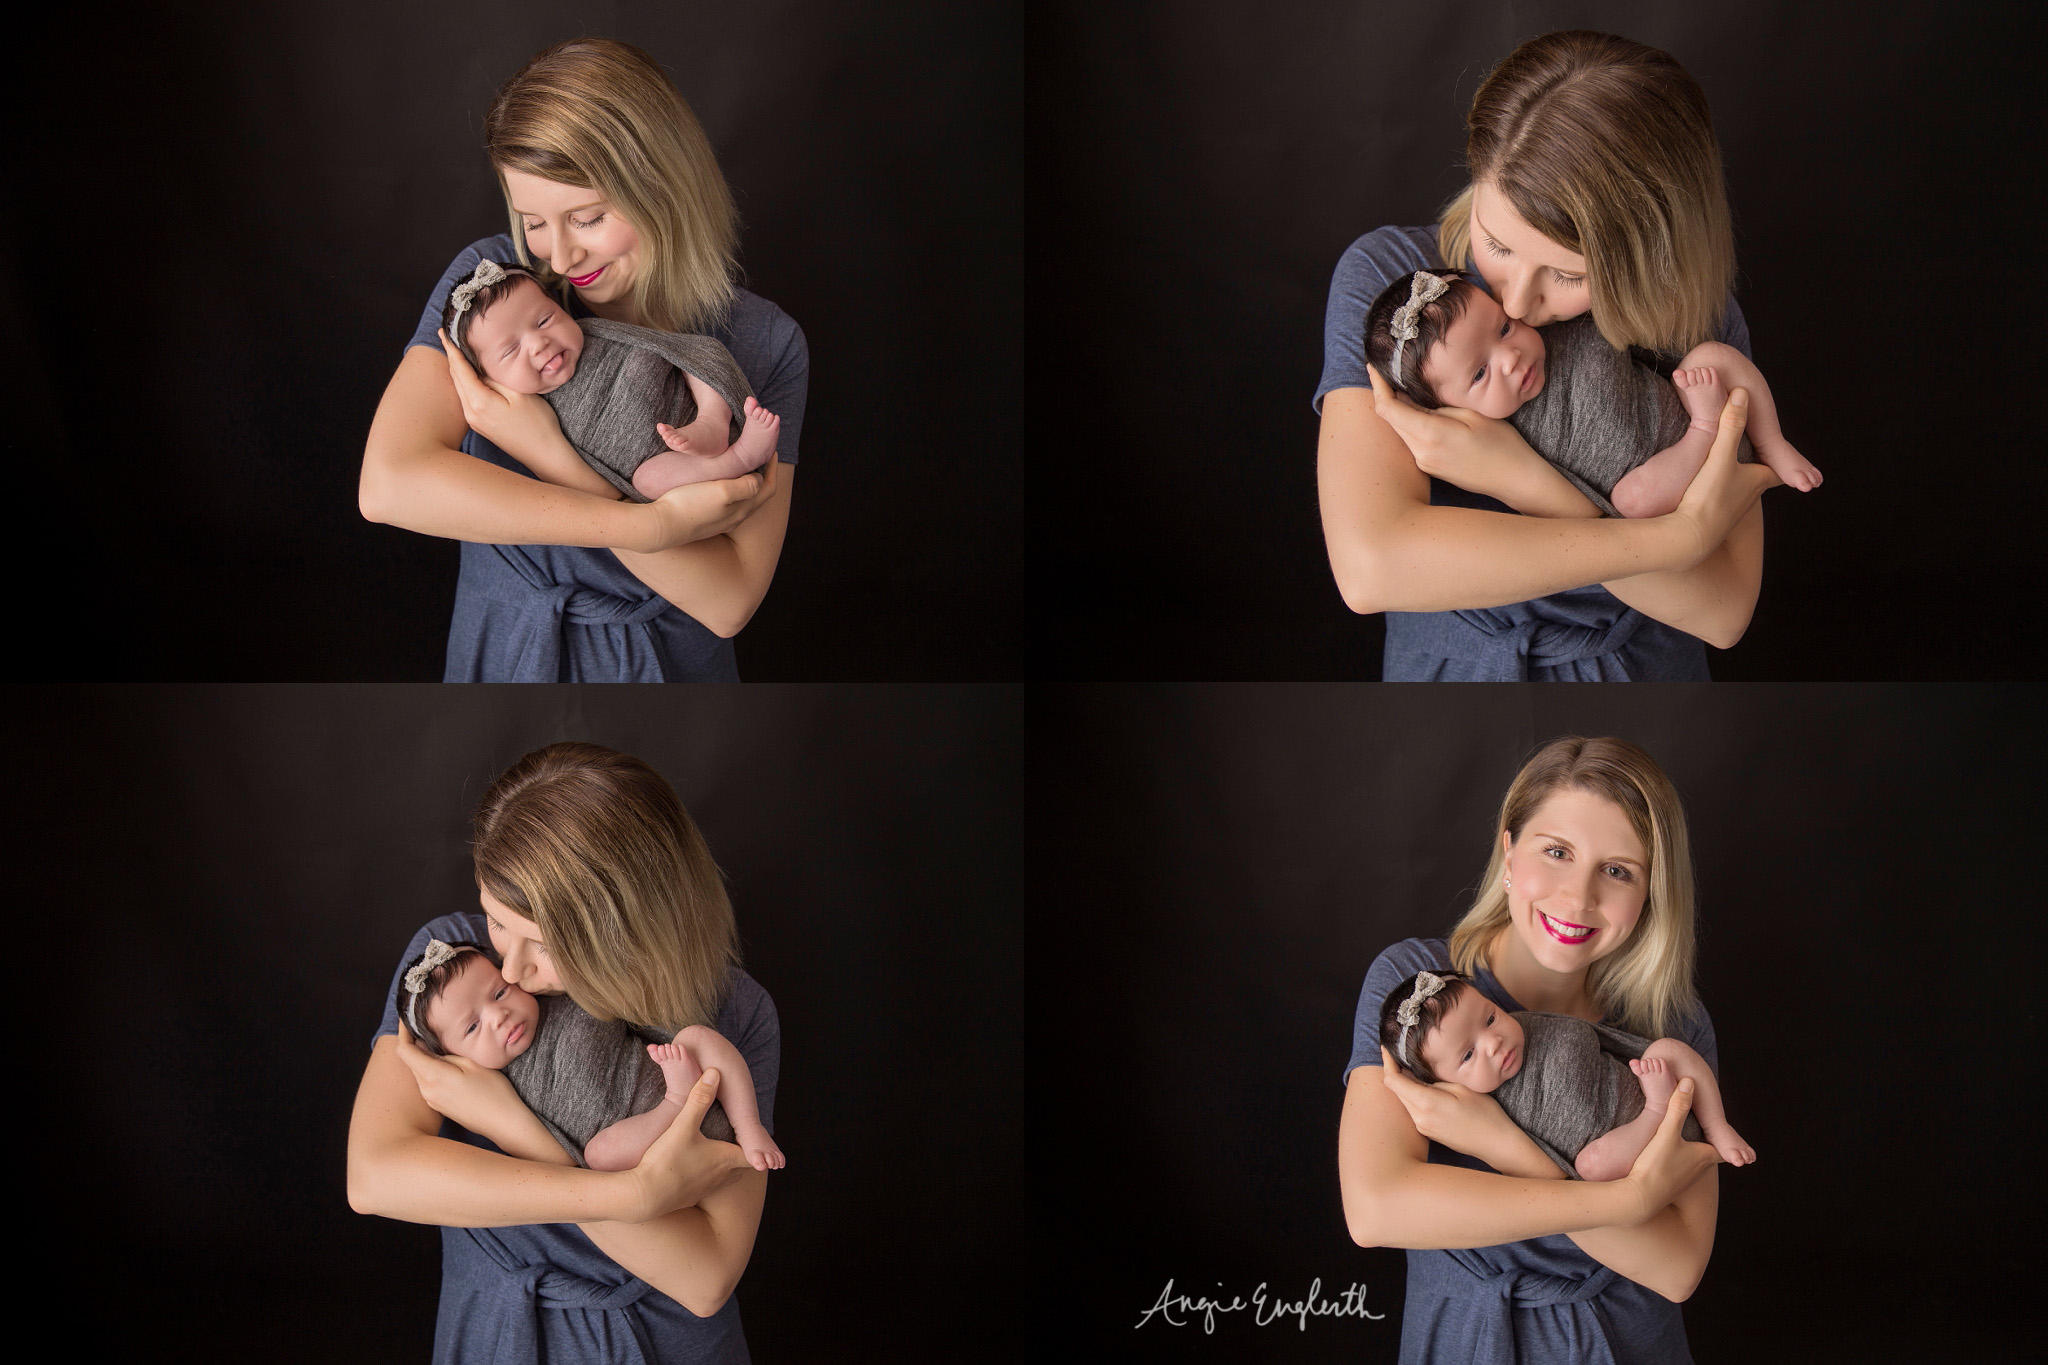 lancaster_newborn_and_maternity_photographer_angie_englerth_central_pa_b015.jpg